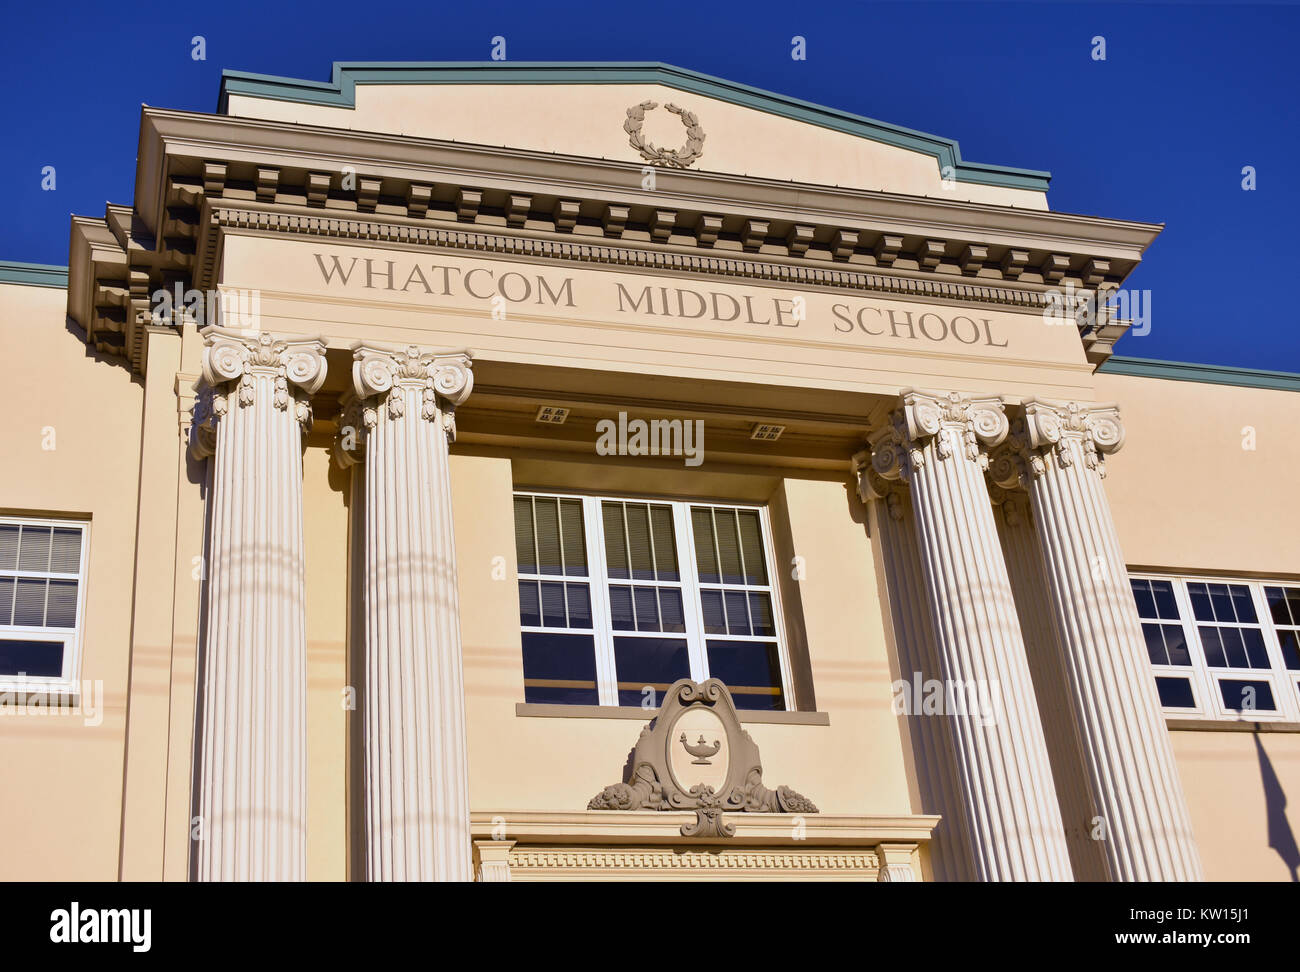 Whatcom Middle School in Bellingham, Washinogton, USA - The school had a major fire and had to be rebuilt - building - Stock Image